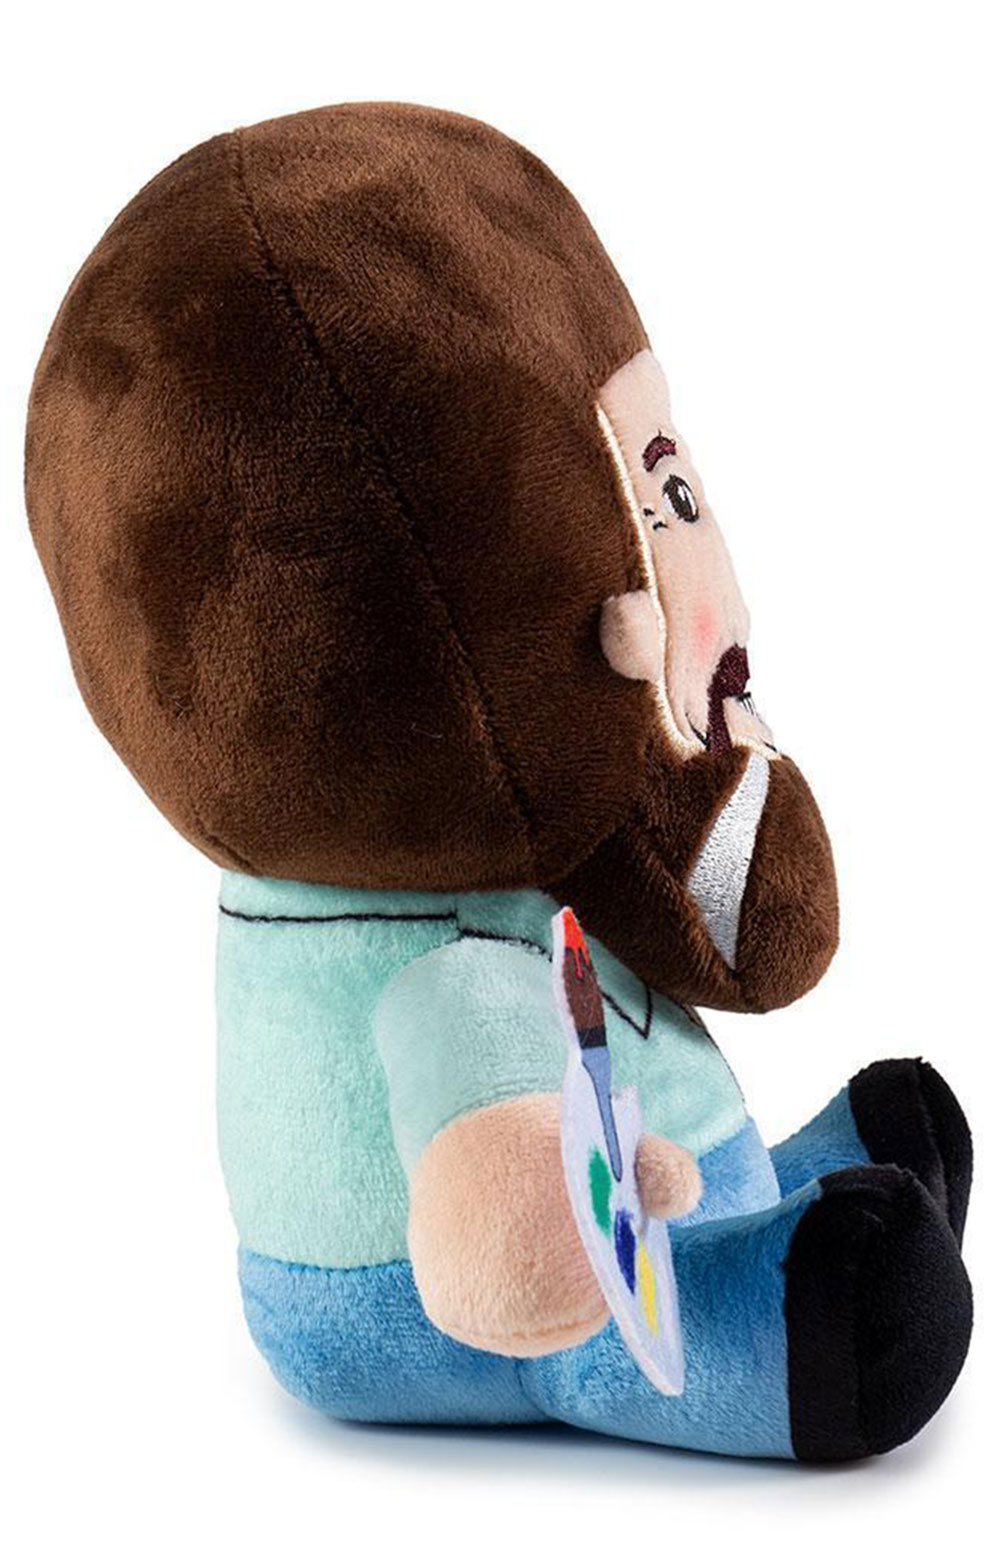 Bob Ross Phunny Plush Toy  3